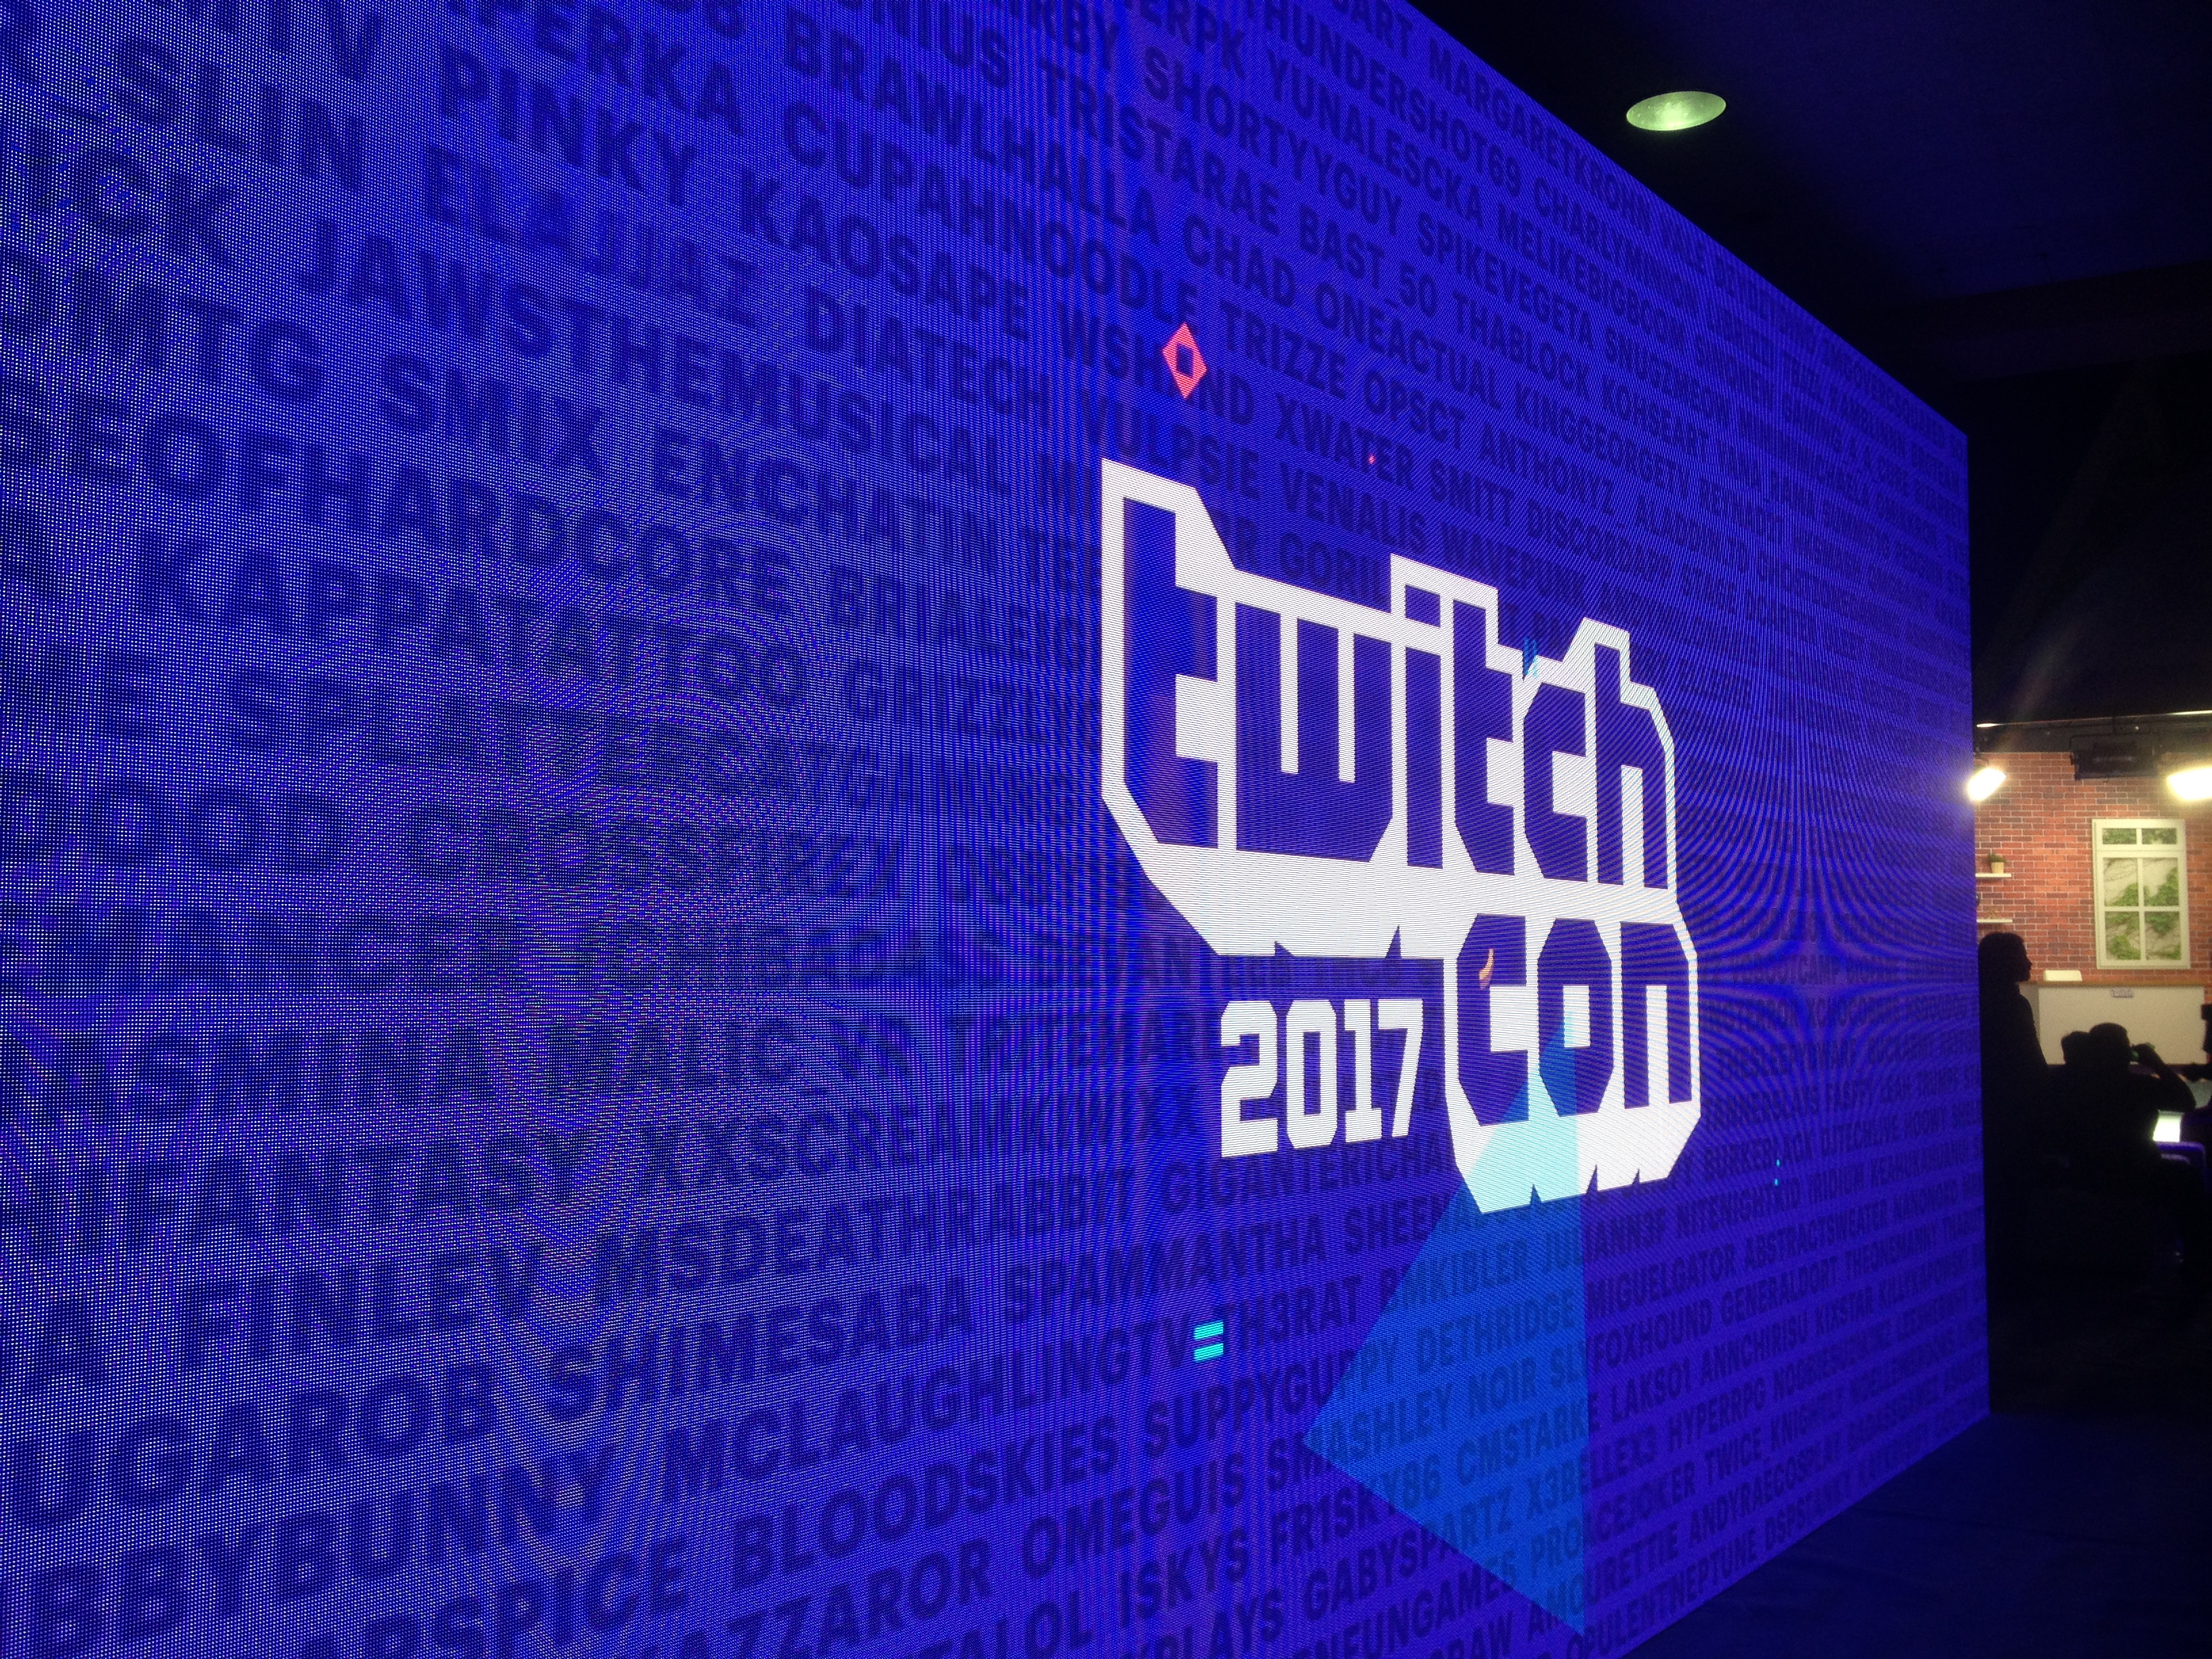 TwitchCon2017 Focuses On Celebrating Community